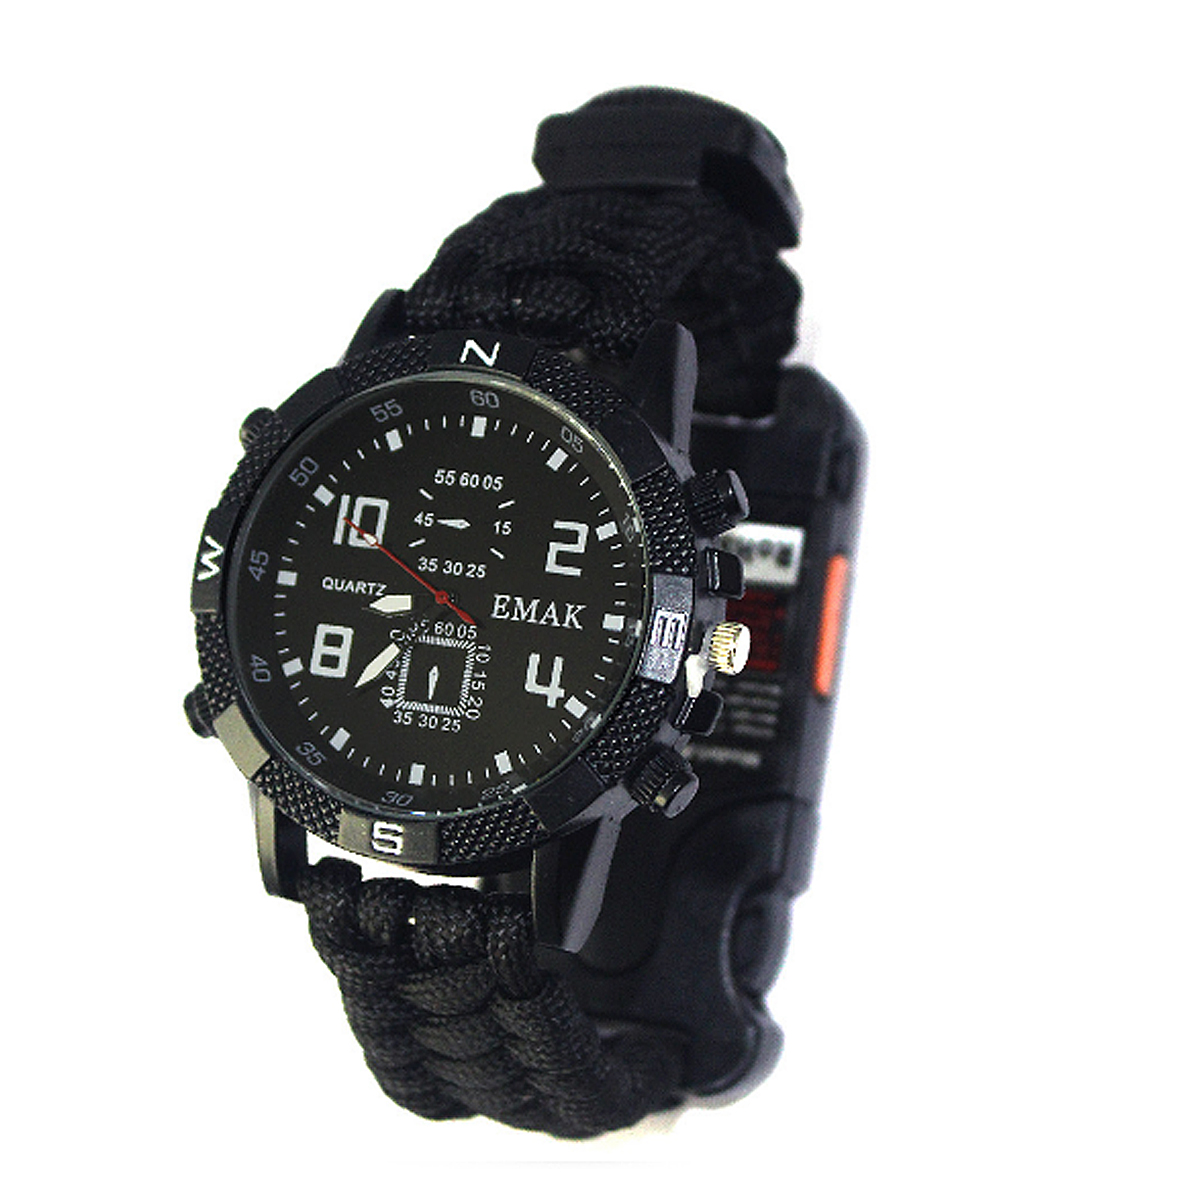 8 in 1 EDC Survival Paracord Bracelet Watch Outdoor Travel Emergency Wristband Flashlight Multifunctional Tool Kits